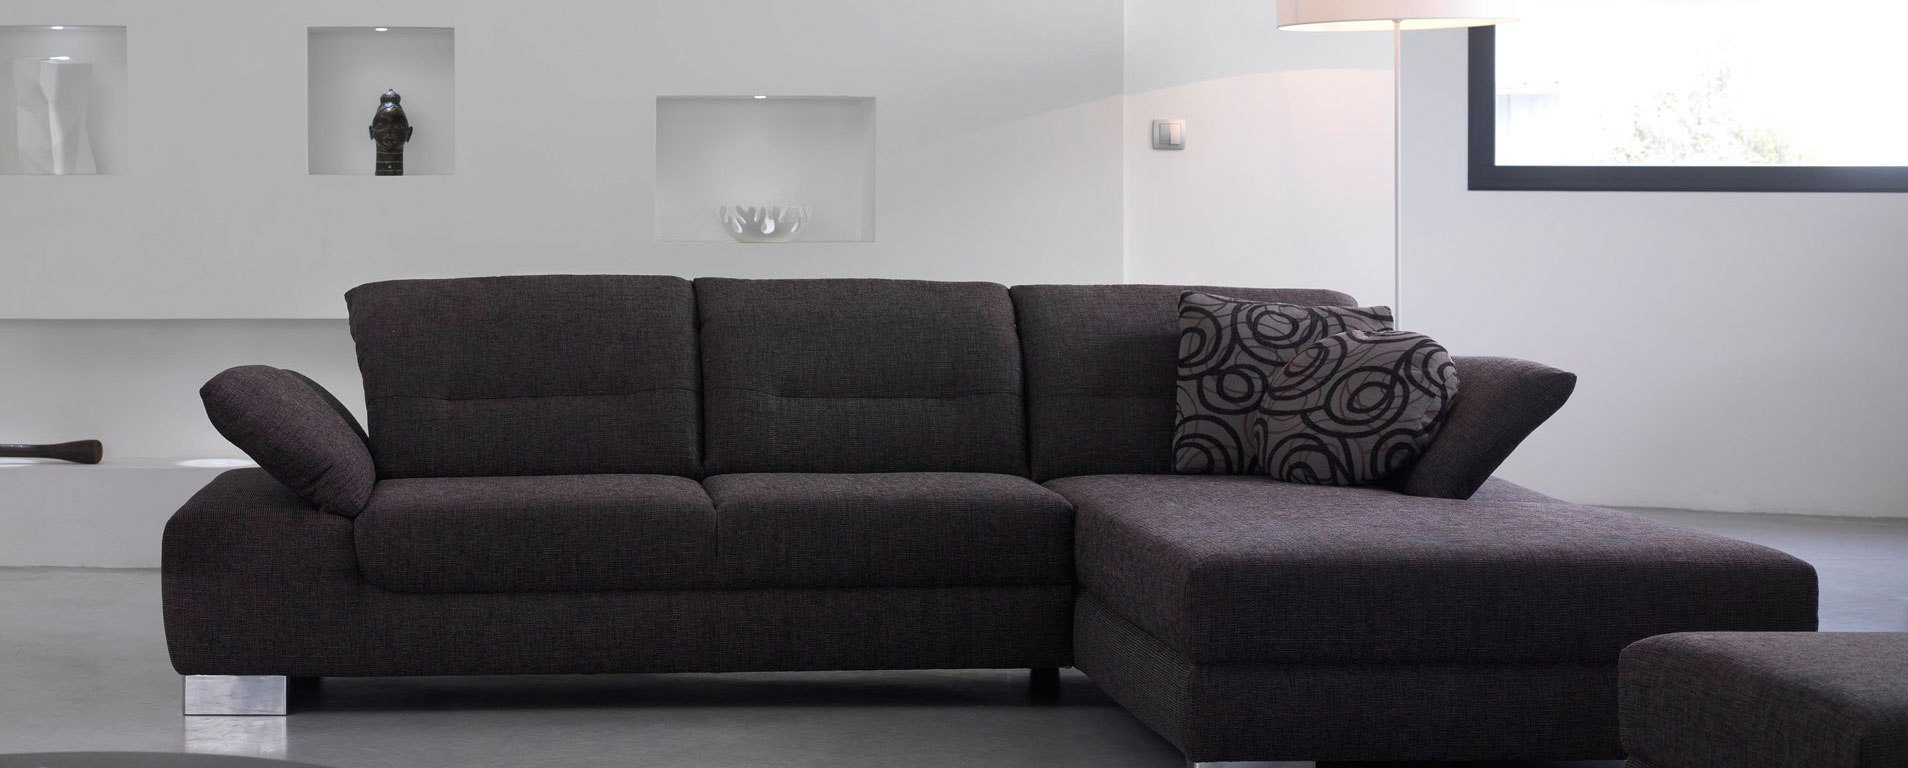 picking the best sofa a quick guide bestmancaves. Black Bedroom Furniture Sets. Home Design Ideas